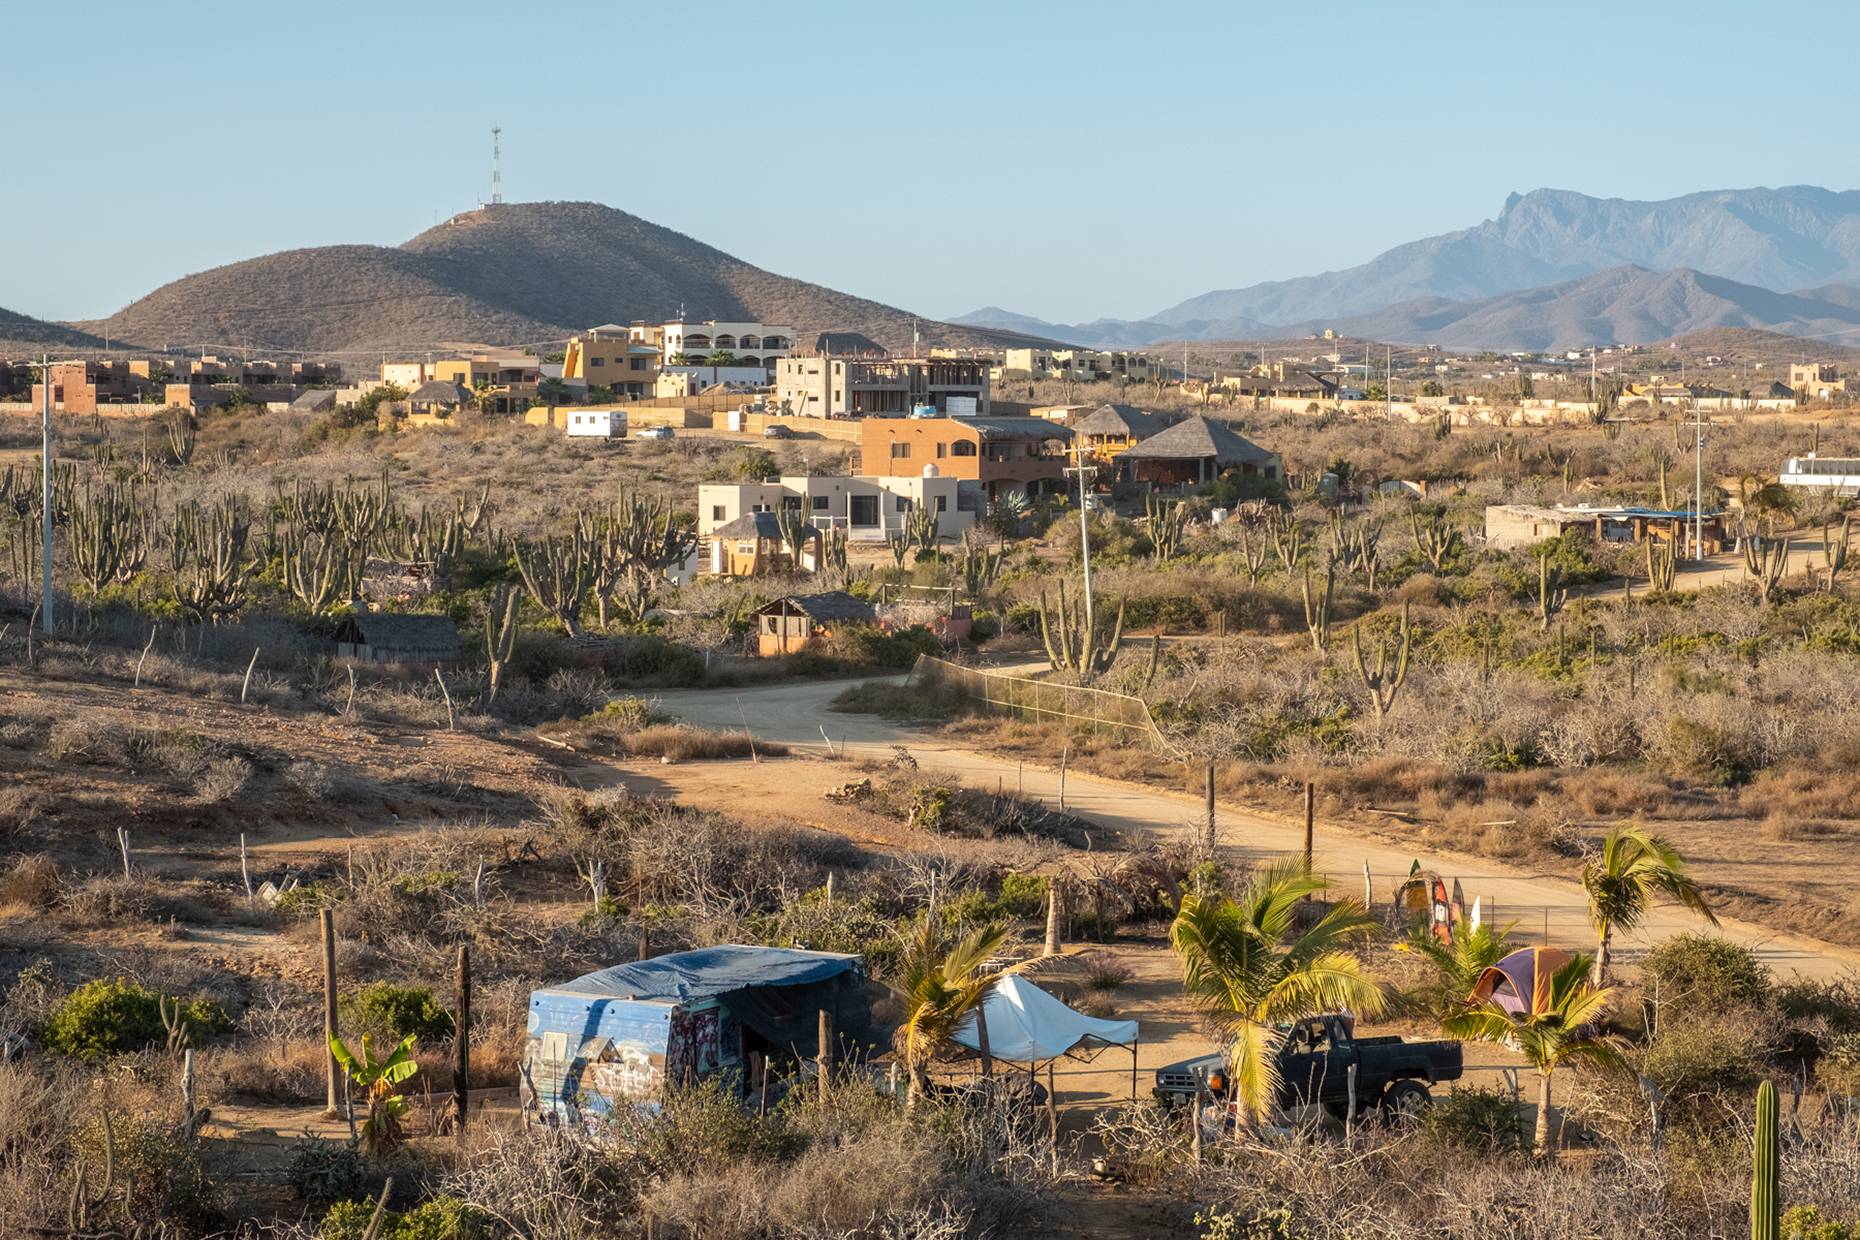 Baja California Sur, Mexico